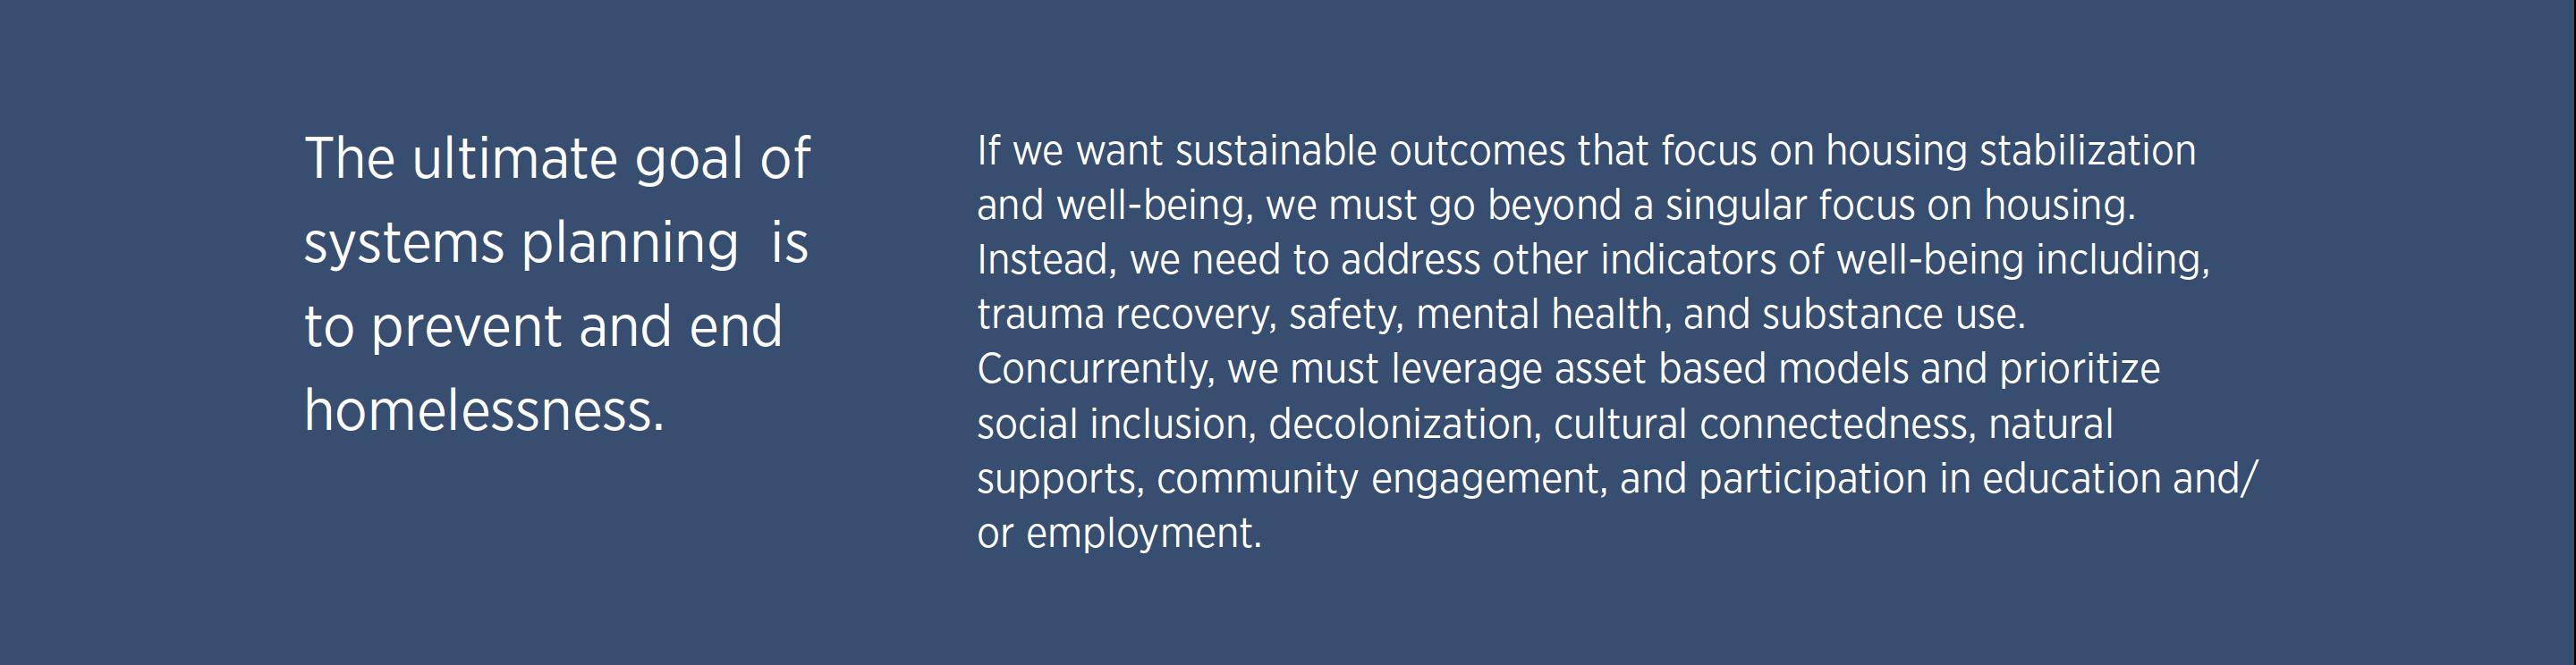 If we want sustainable outcomes that focus on housing stabilization and well-being, we must go beyond a singular focus on housing. Instead, we need to address other indicators of well-being including, trauma recovery, safety, mental health, and substance